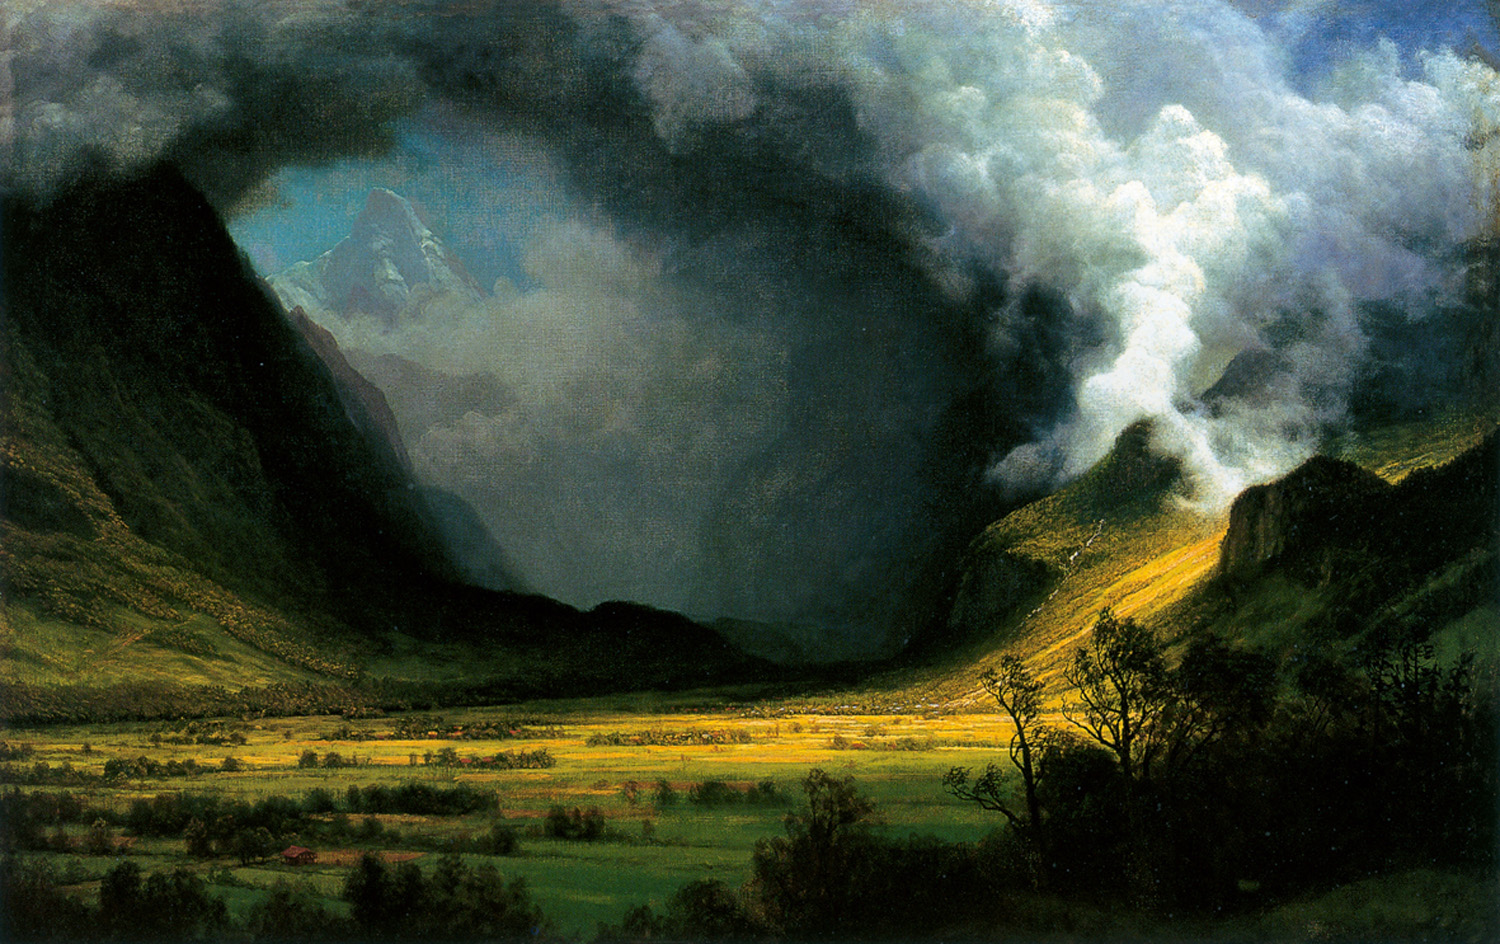 A storm in the mountains